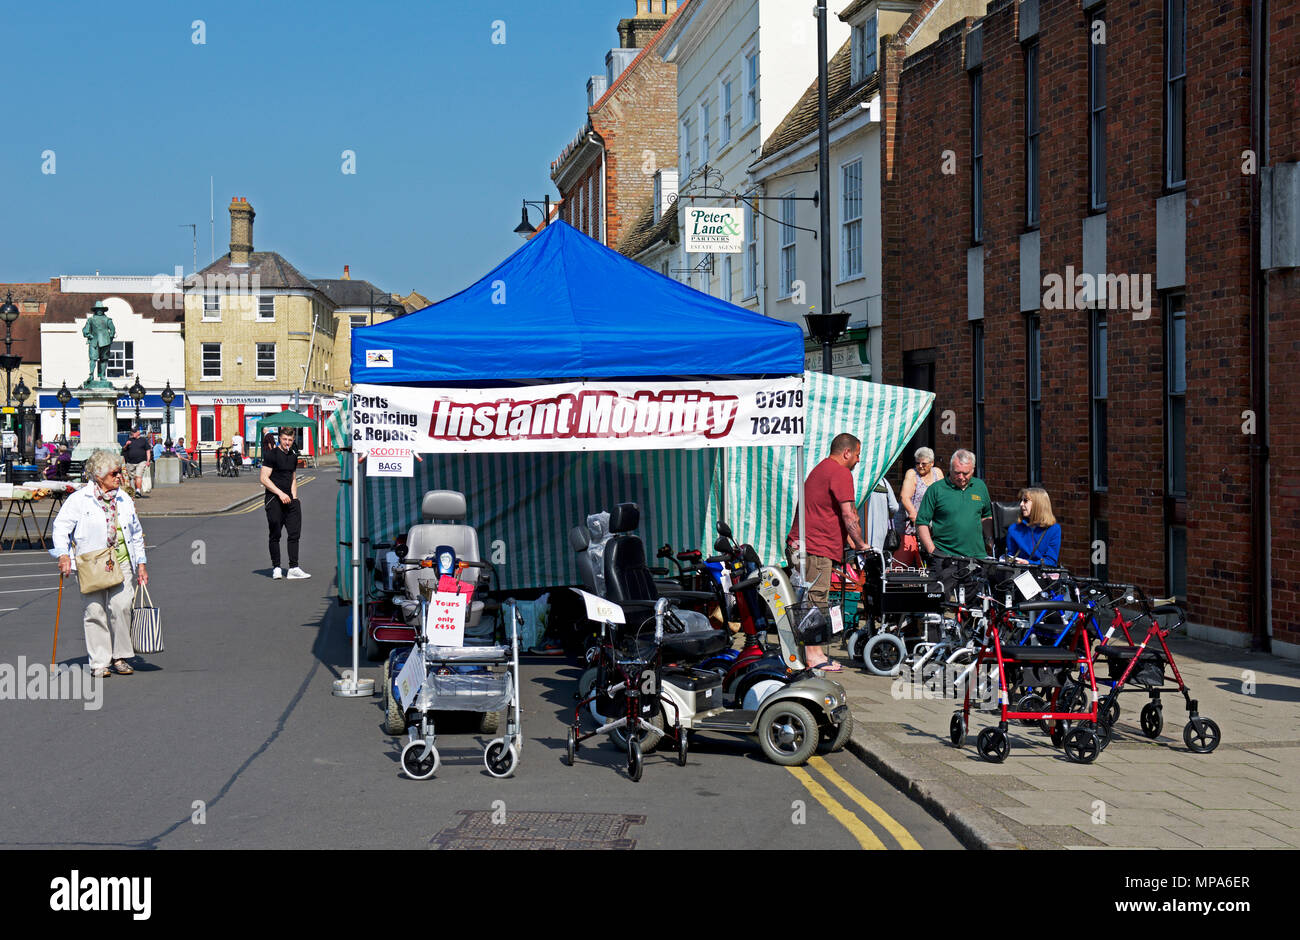 Market stall selling mobility scooters, St Ives, Cambridgeshire, England UK - Stock Image